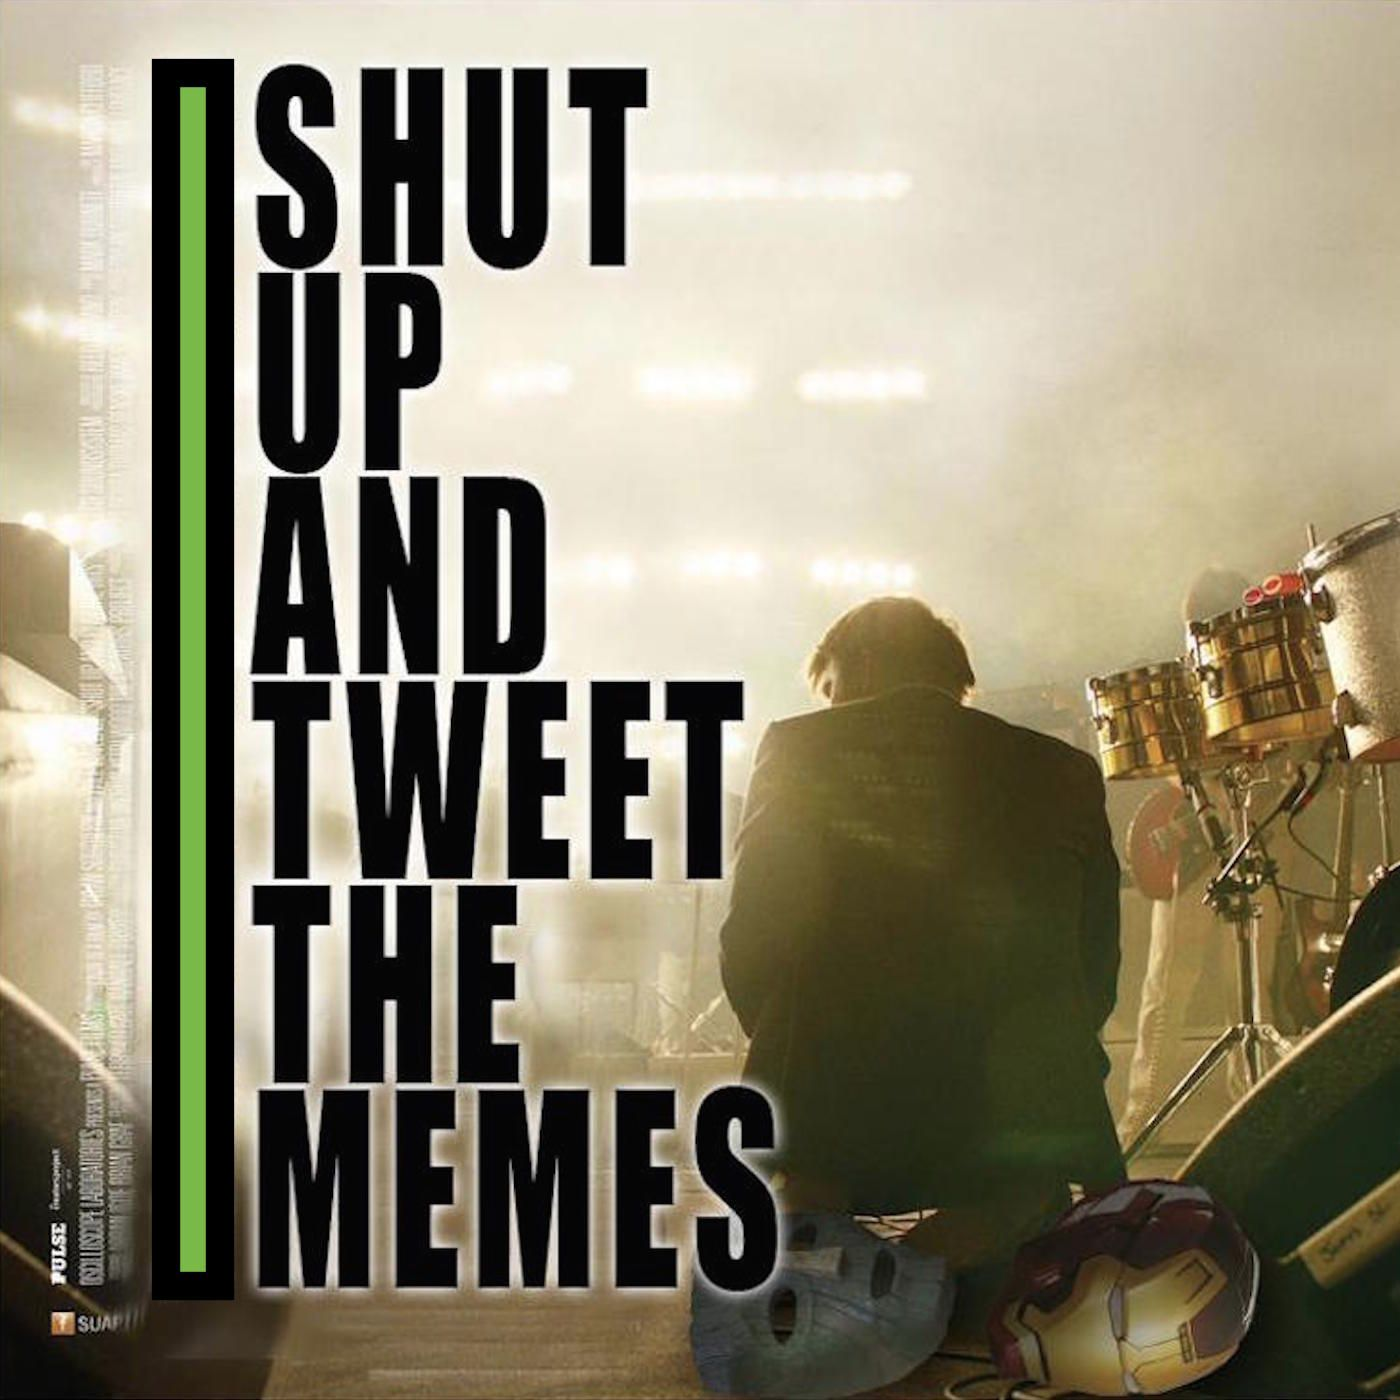 Shut Up & Tweet The Memes